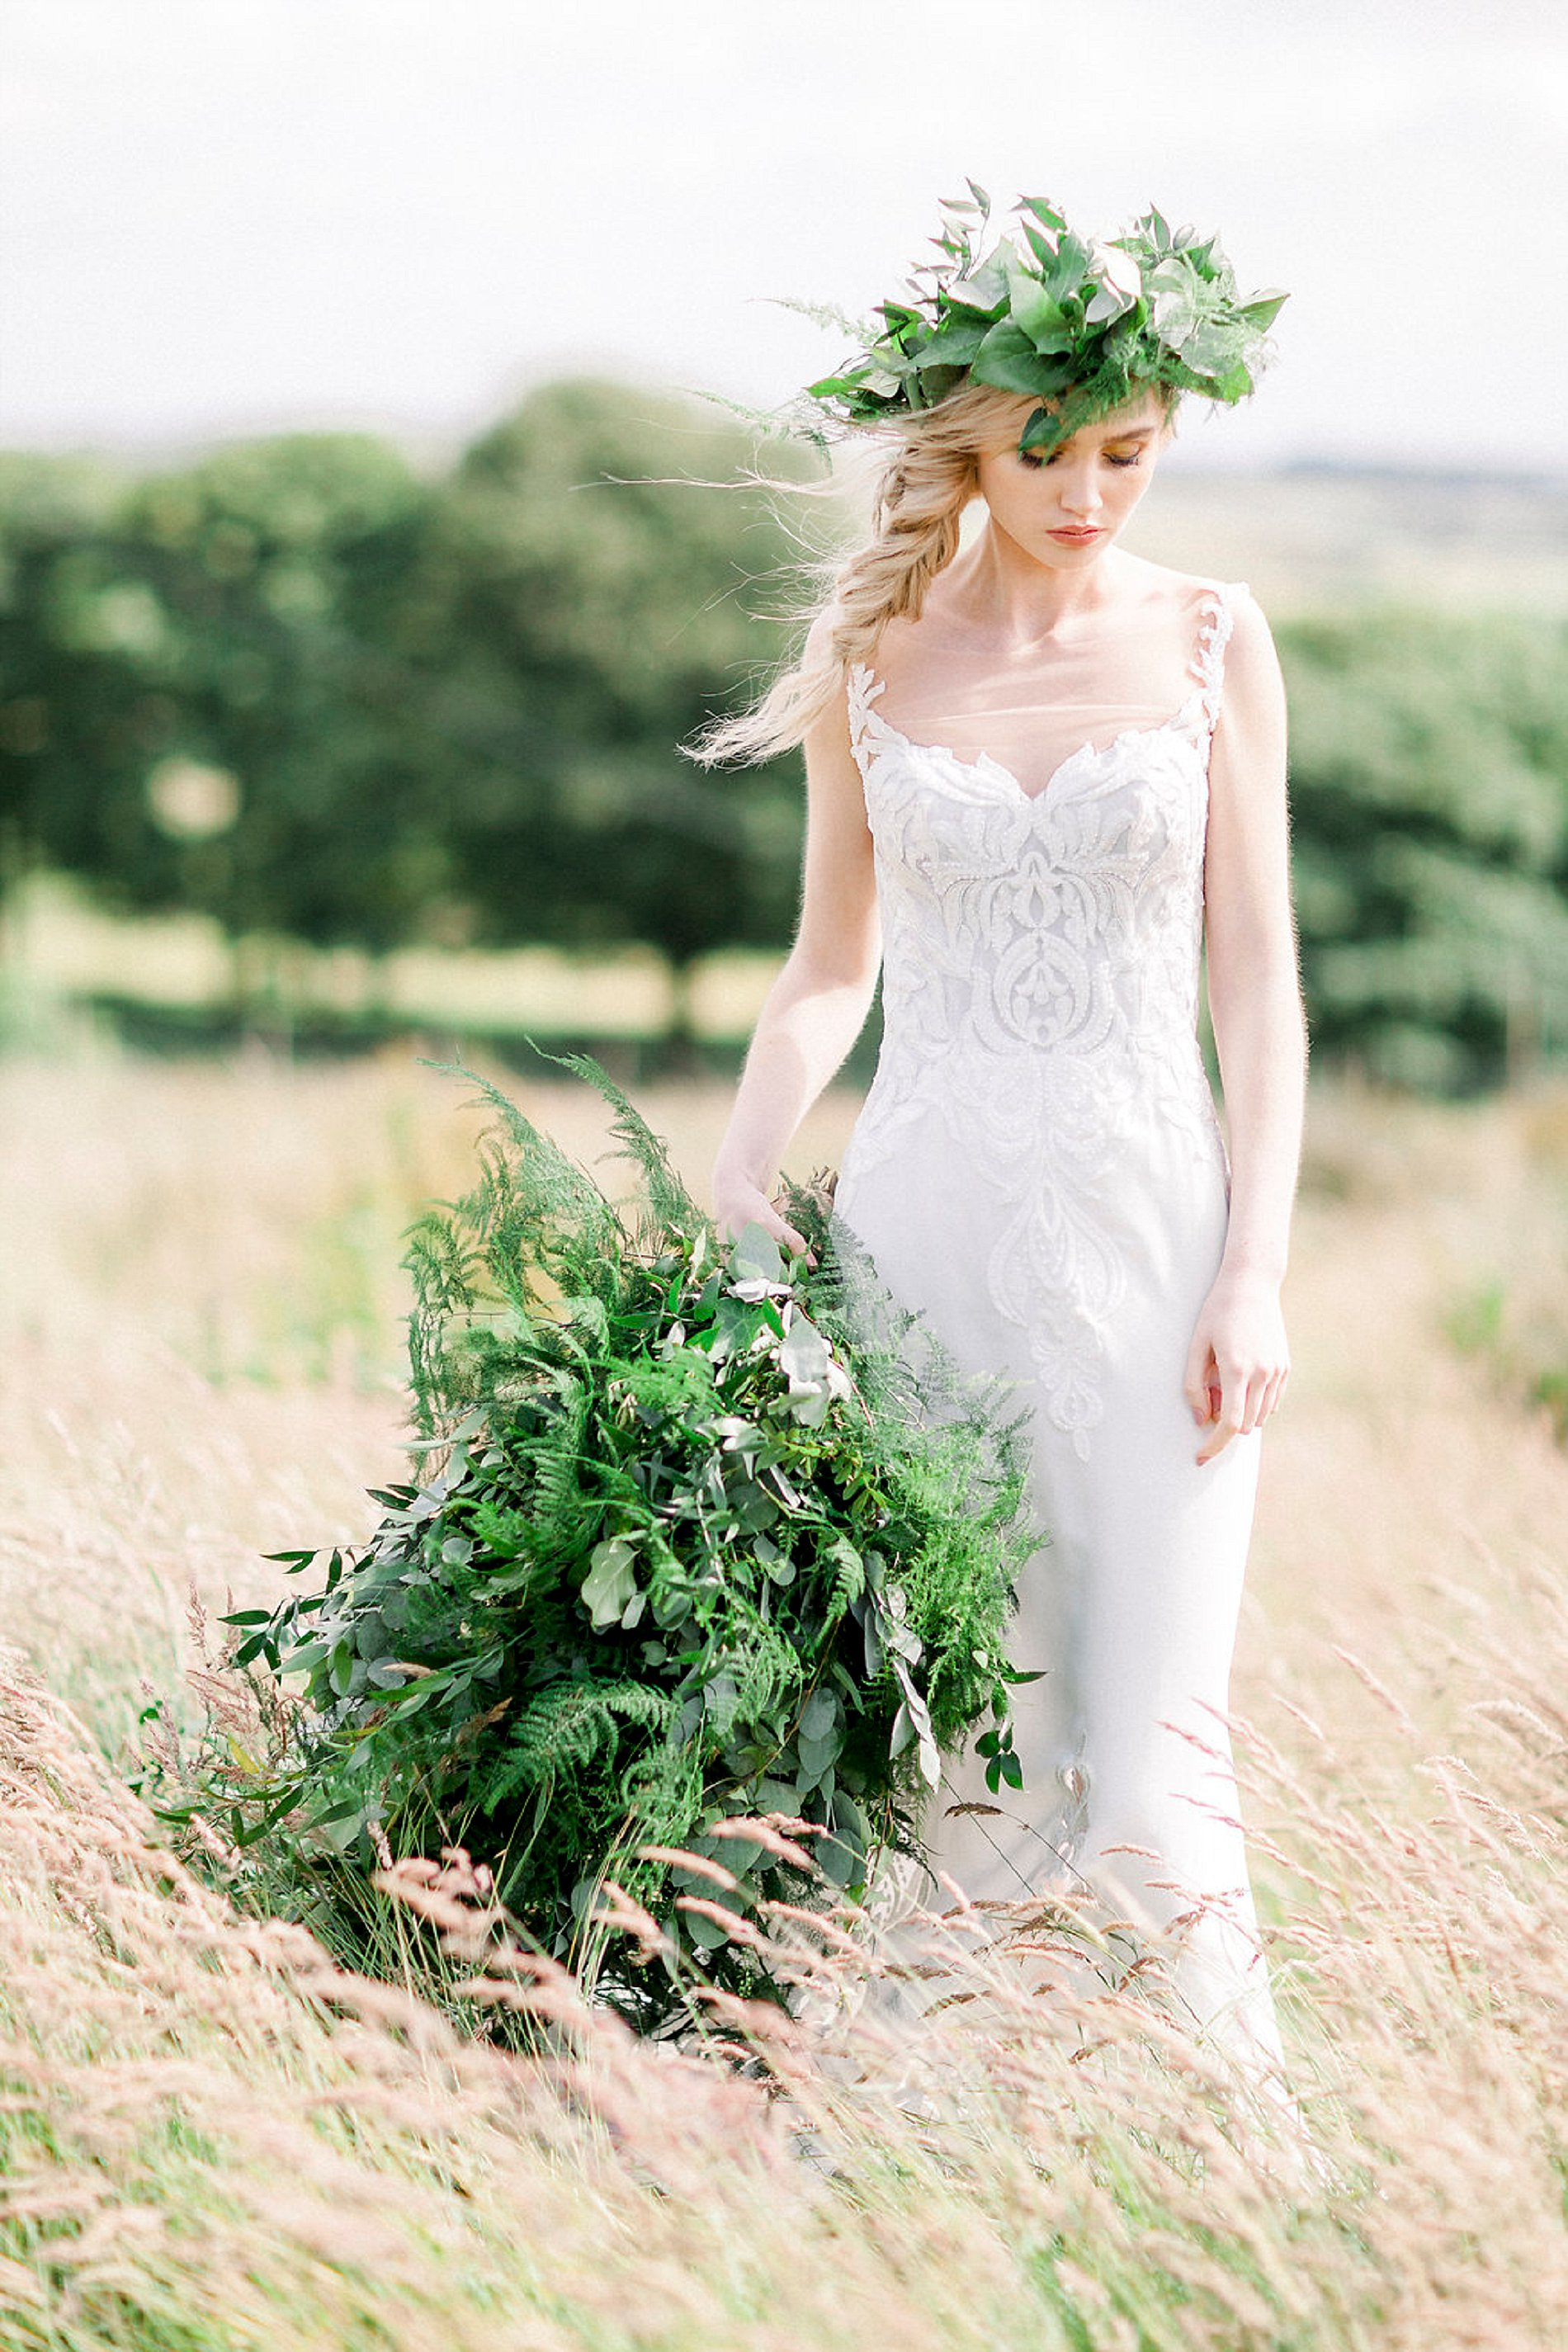 Super Natural Creative Bridal Editorial (c) Jo Bradbury (30)